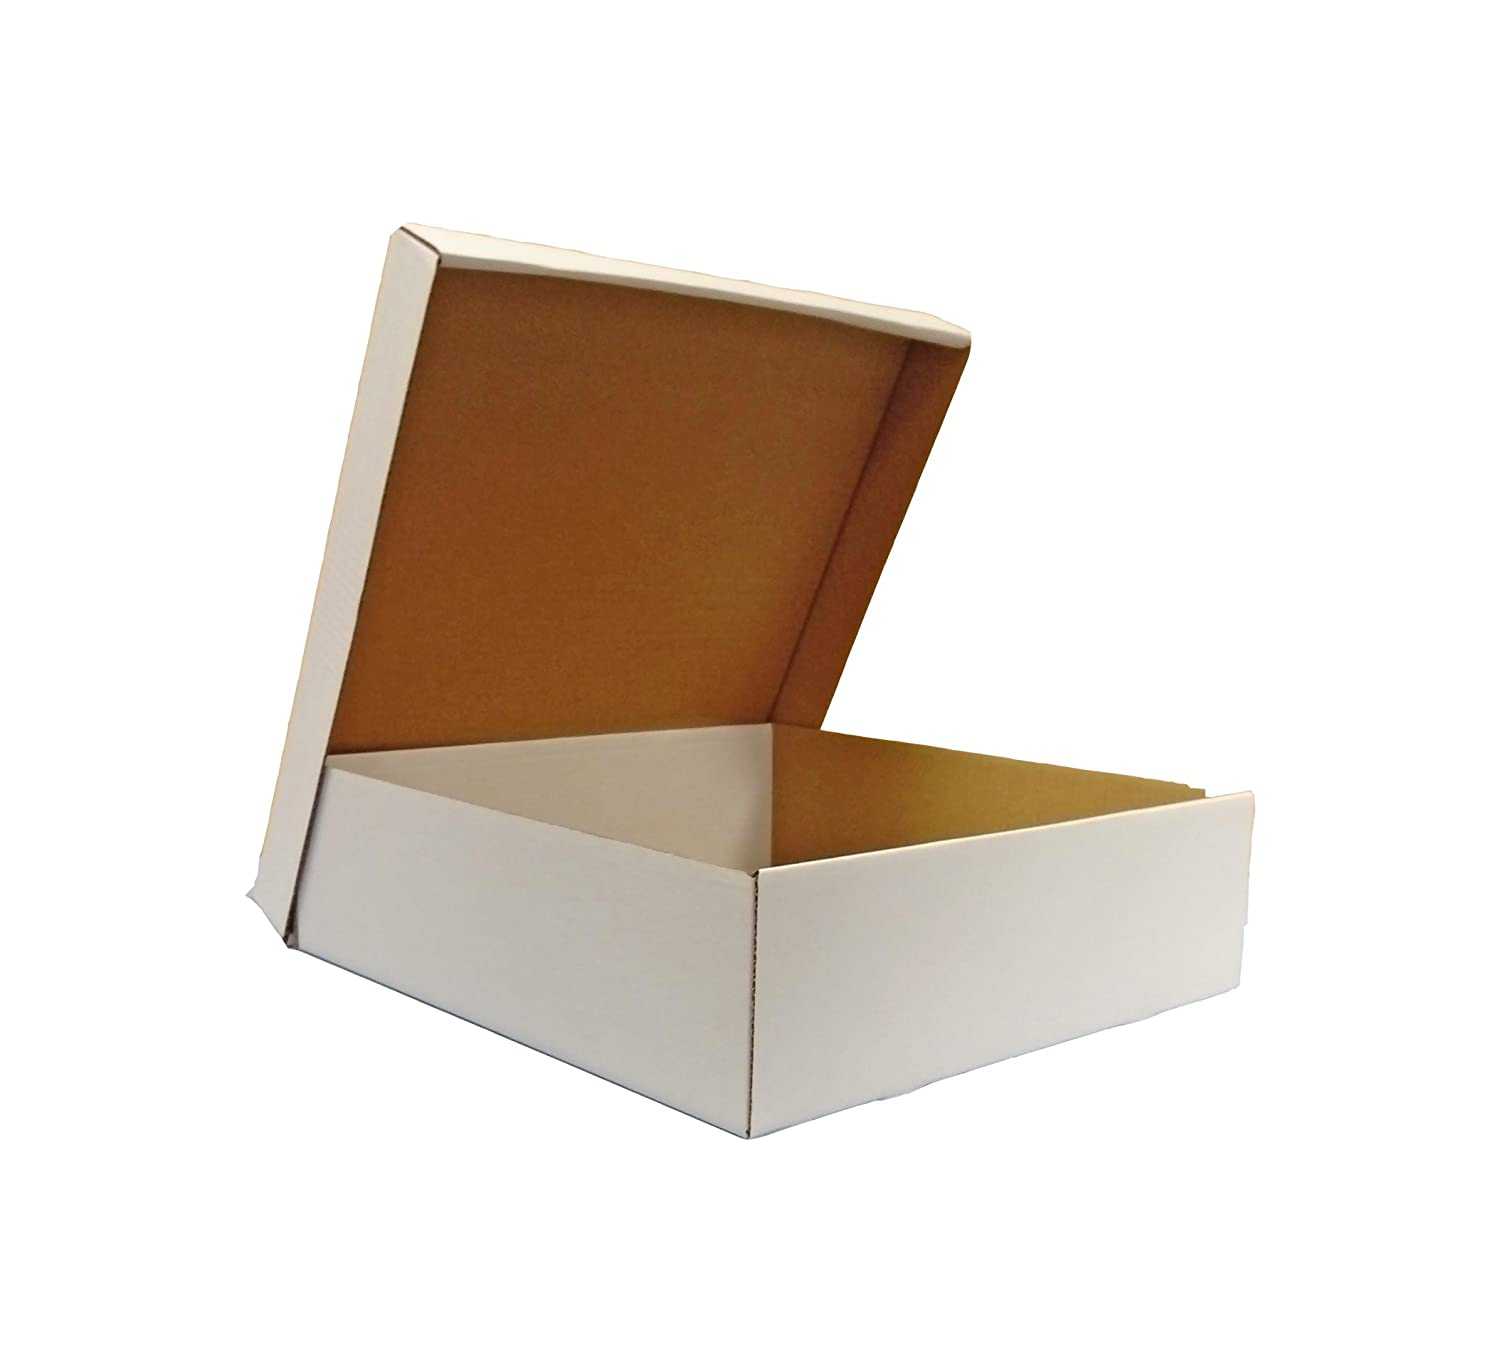 50 X BOX AND LID 400mm x 400mm X 125mm BROWN